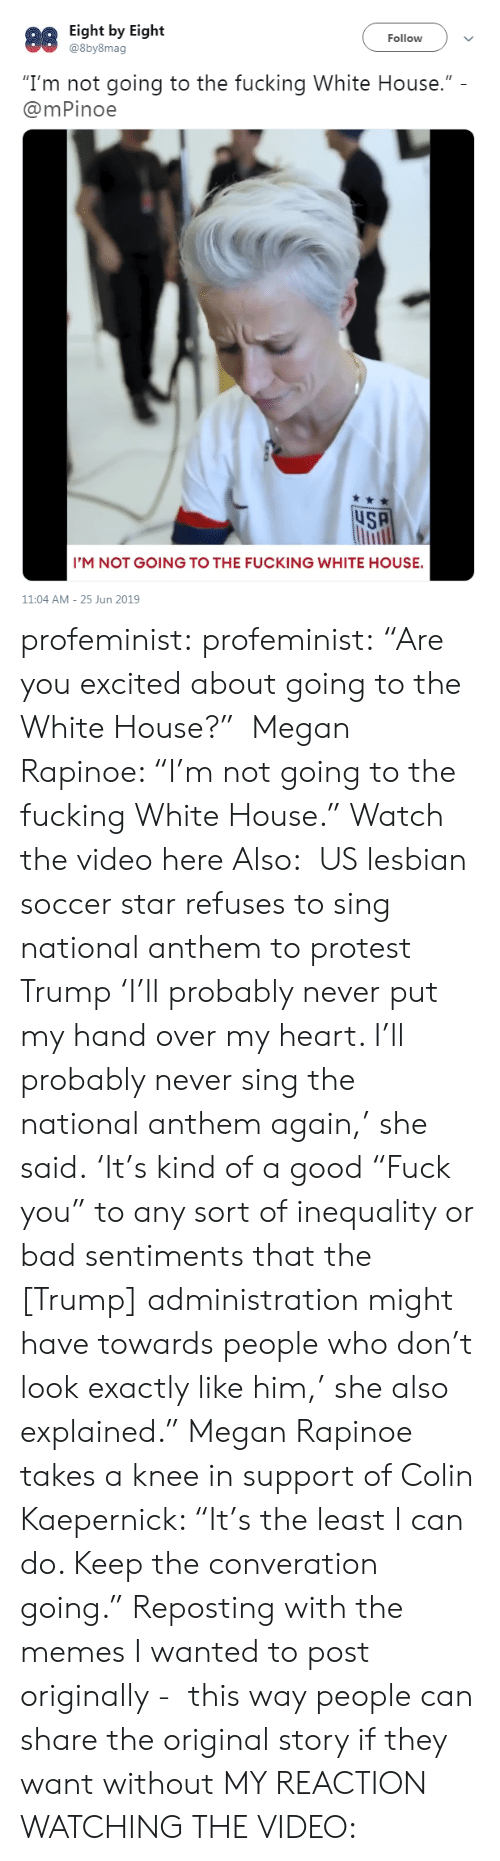 "Colin Kaepernick: Eight by Eight  @8by8mag  88  Follow  ""I'm not going to the fucking White House.""  @mPinoe  uSA  I'M NOT GOING TO THE FUCKING WHITE HOUSE.  11:04 AM 25 Jun 2019 profeminist: profeminist:  ""Are you excited about going to the White House?""  Megan Rapinoe: ""I'm not going to the fucking White House."" Watch the video here  Also:  US lesbian soccer star refuses to sing national anthem to protest Trump 'I'll probably never put my hand over my heart. I'll probably never sing the national anthem again,' she said. 'It's kind of a good ""Fuck you"" to any sort of inequality or bad sentiments that the [Trump] administration might have towards people who don't look exactly like him,' she also explained."" Megan Rapinoe takes a knee in support of Colin Kaepernick: ""It's the least I can do. Keep the converation going.""  Reposting with the memes I wanted to post originally -  this way people can share the original story if they want without MY REACTION WATCHING THE VIDEO:"